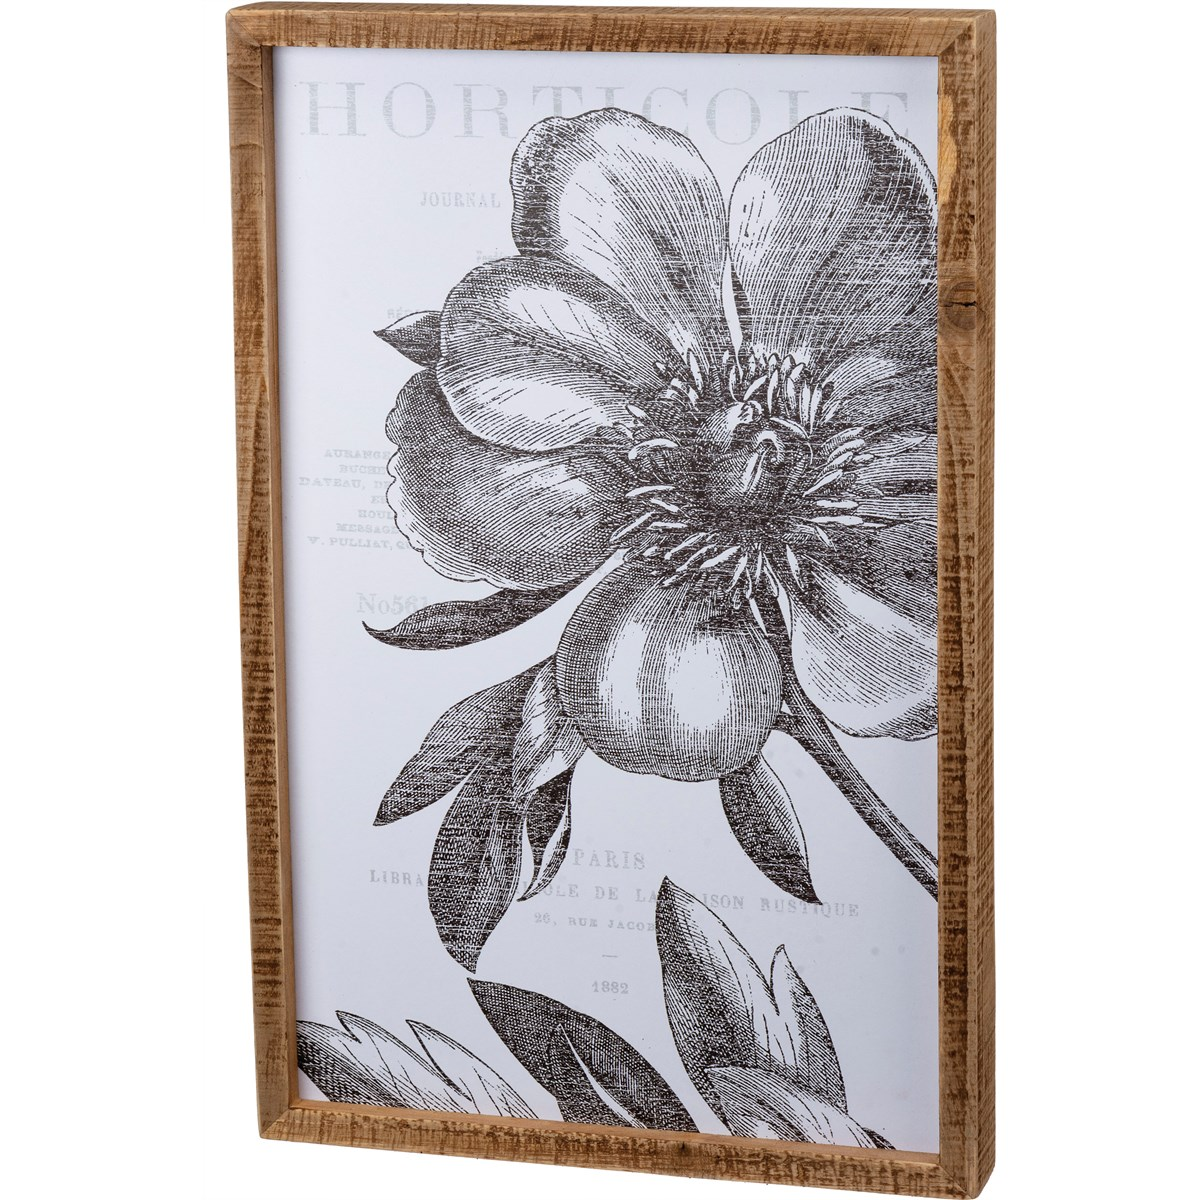 "Inset Box Sign - Floral - 13"" x 20"" x 1.75"" - Wood, Paper"